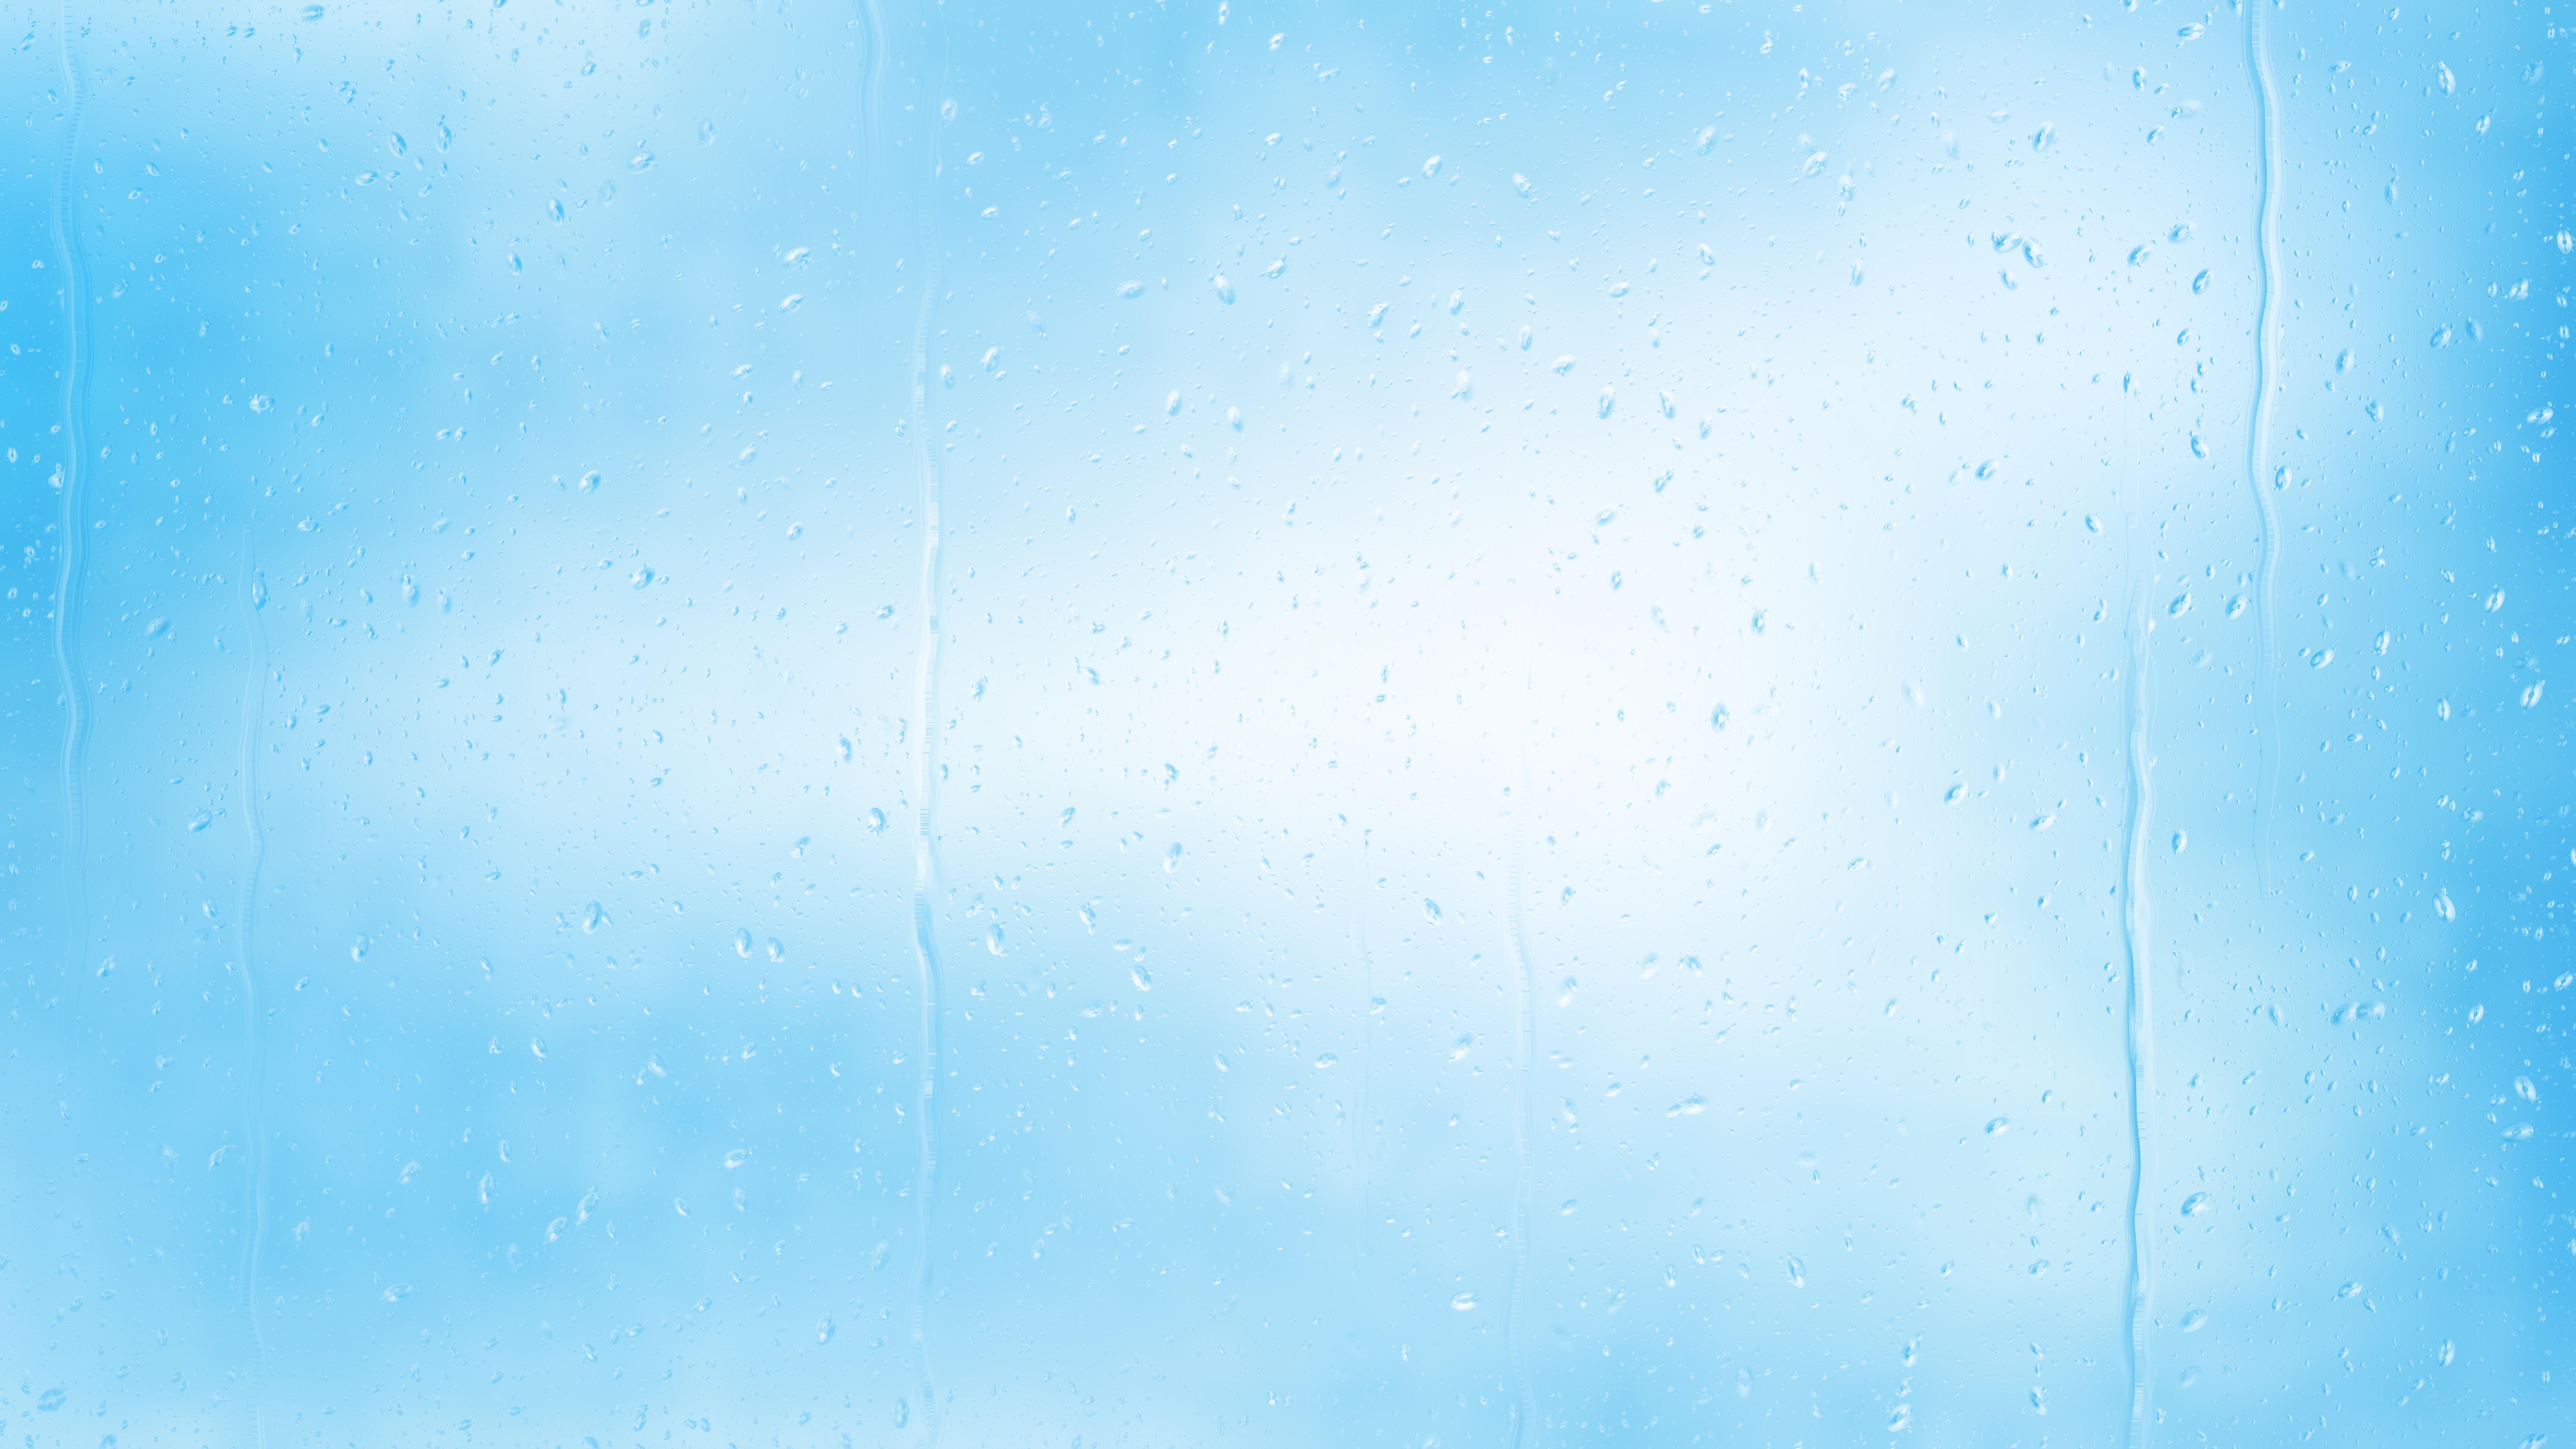 Light Blue Water Drop Background Image